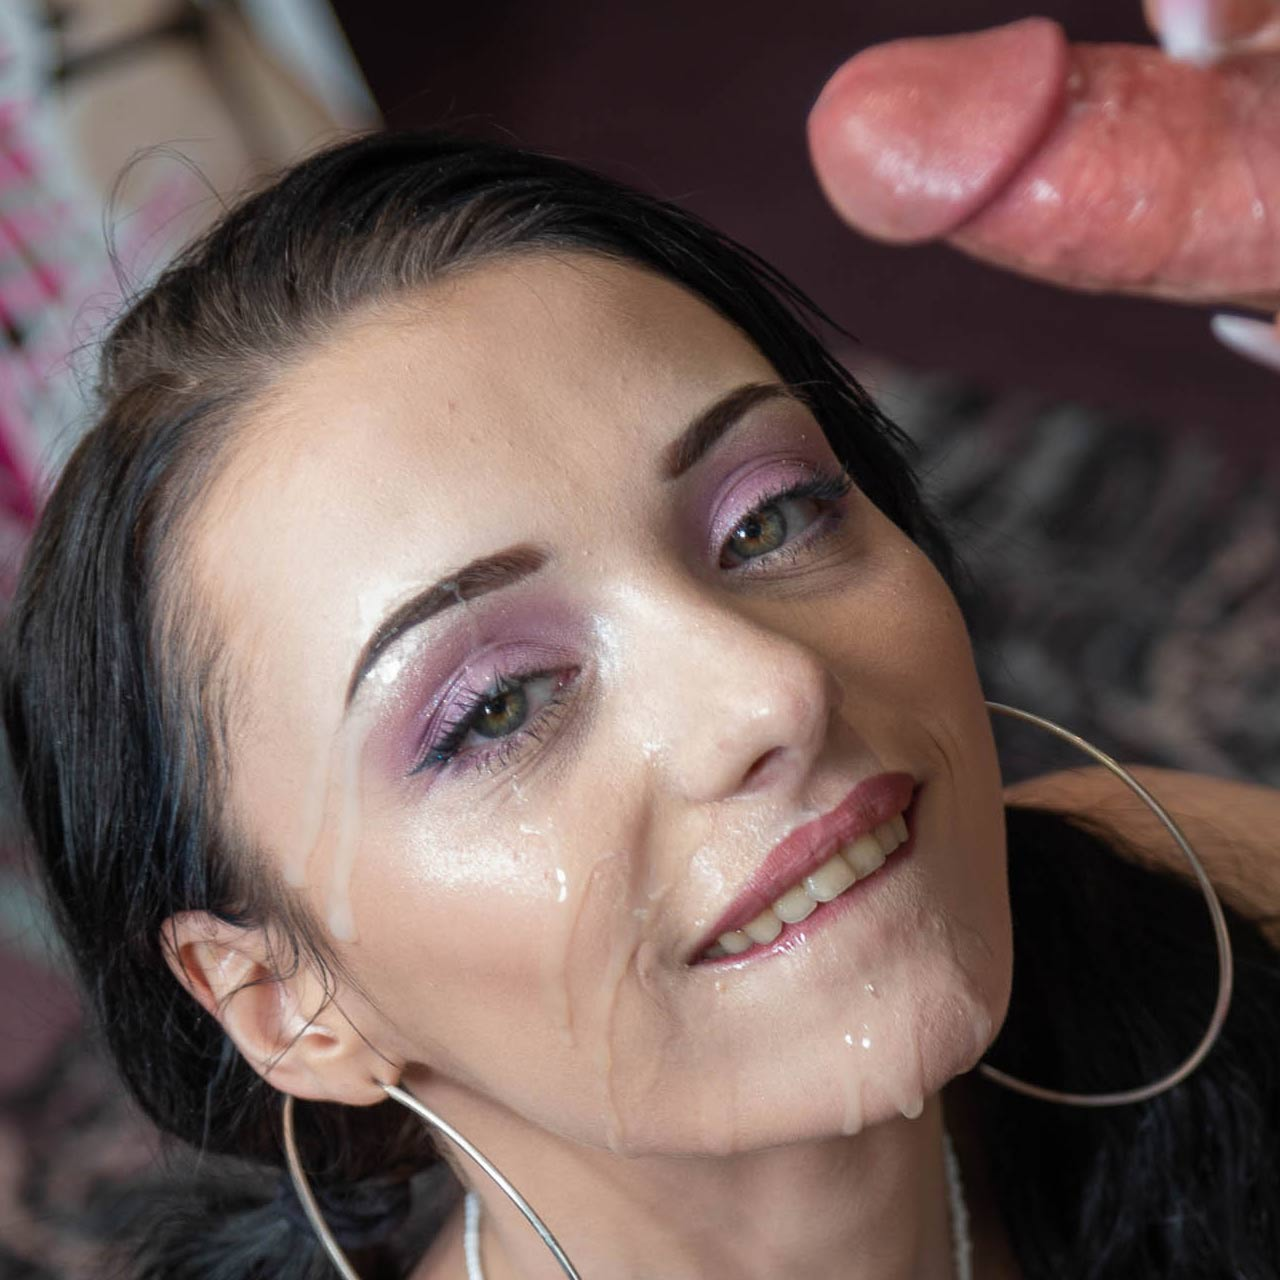 Cecelia Taylor giving Handjobs in Public. She gets Facial Cumshots and walks with cum on her face in the streets. Public sex at Manojob.